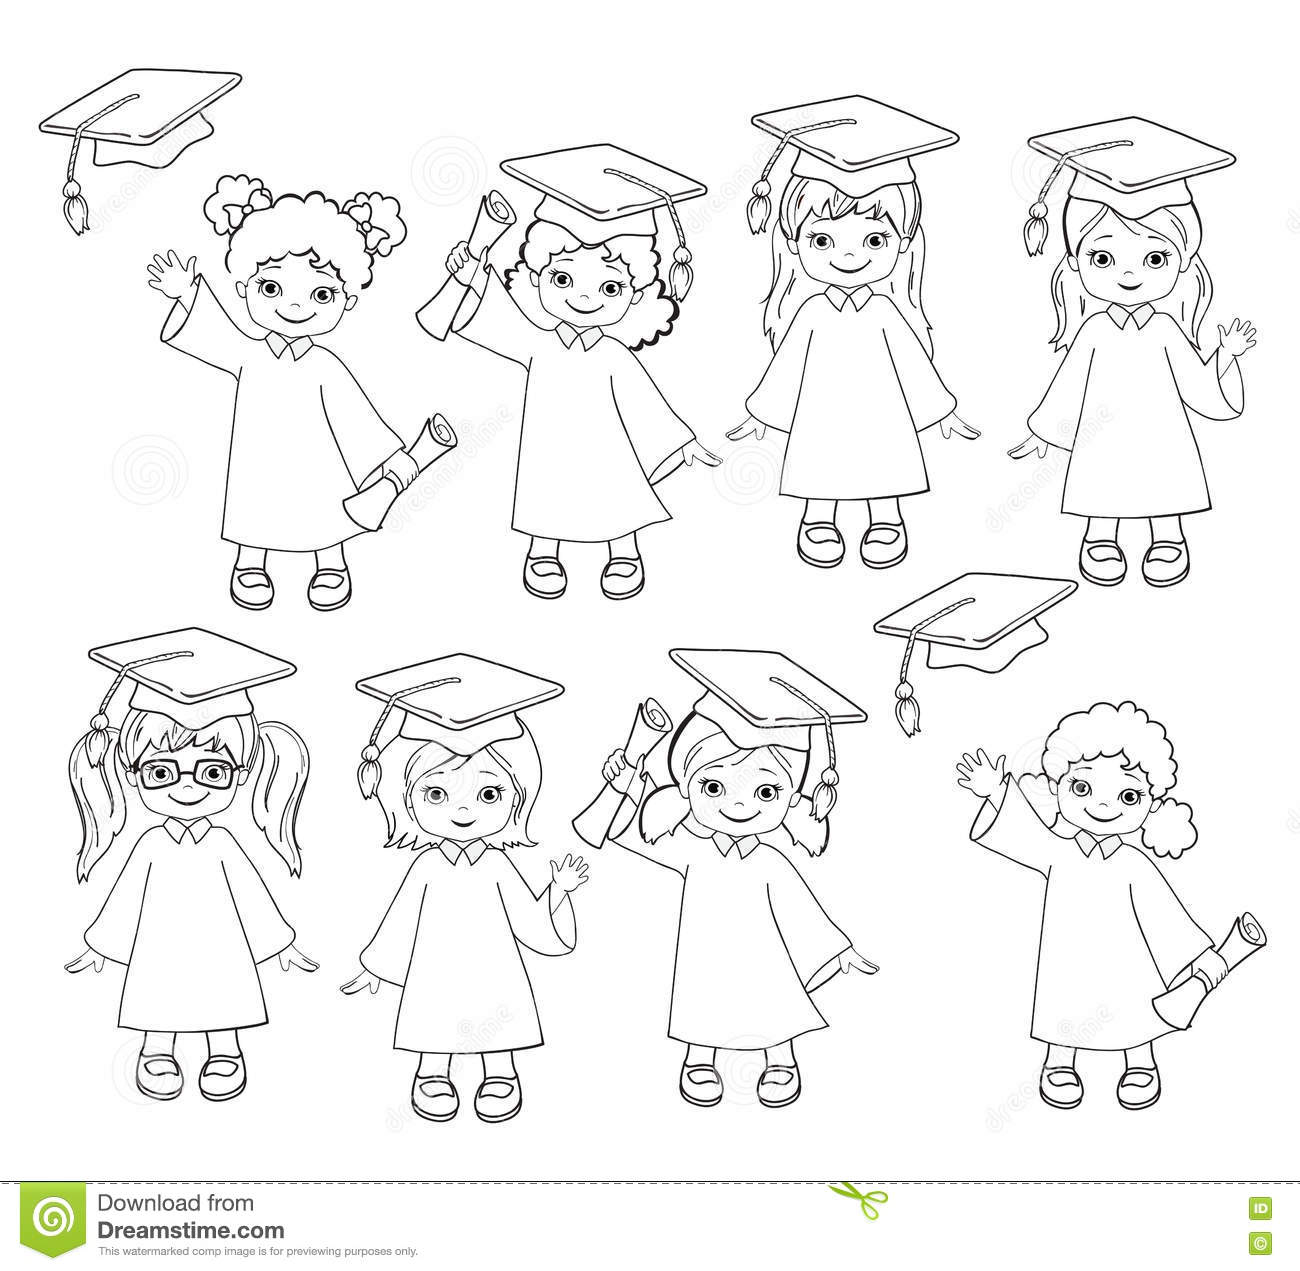 Coloring. Girls. Set Of Children In A Graduation Gown And